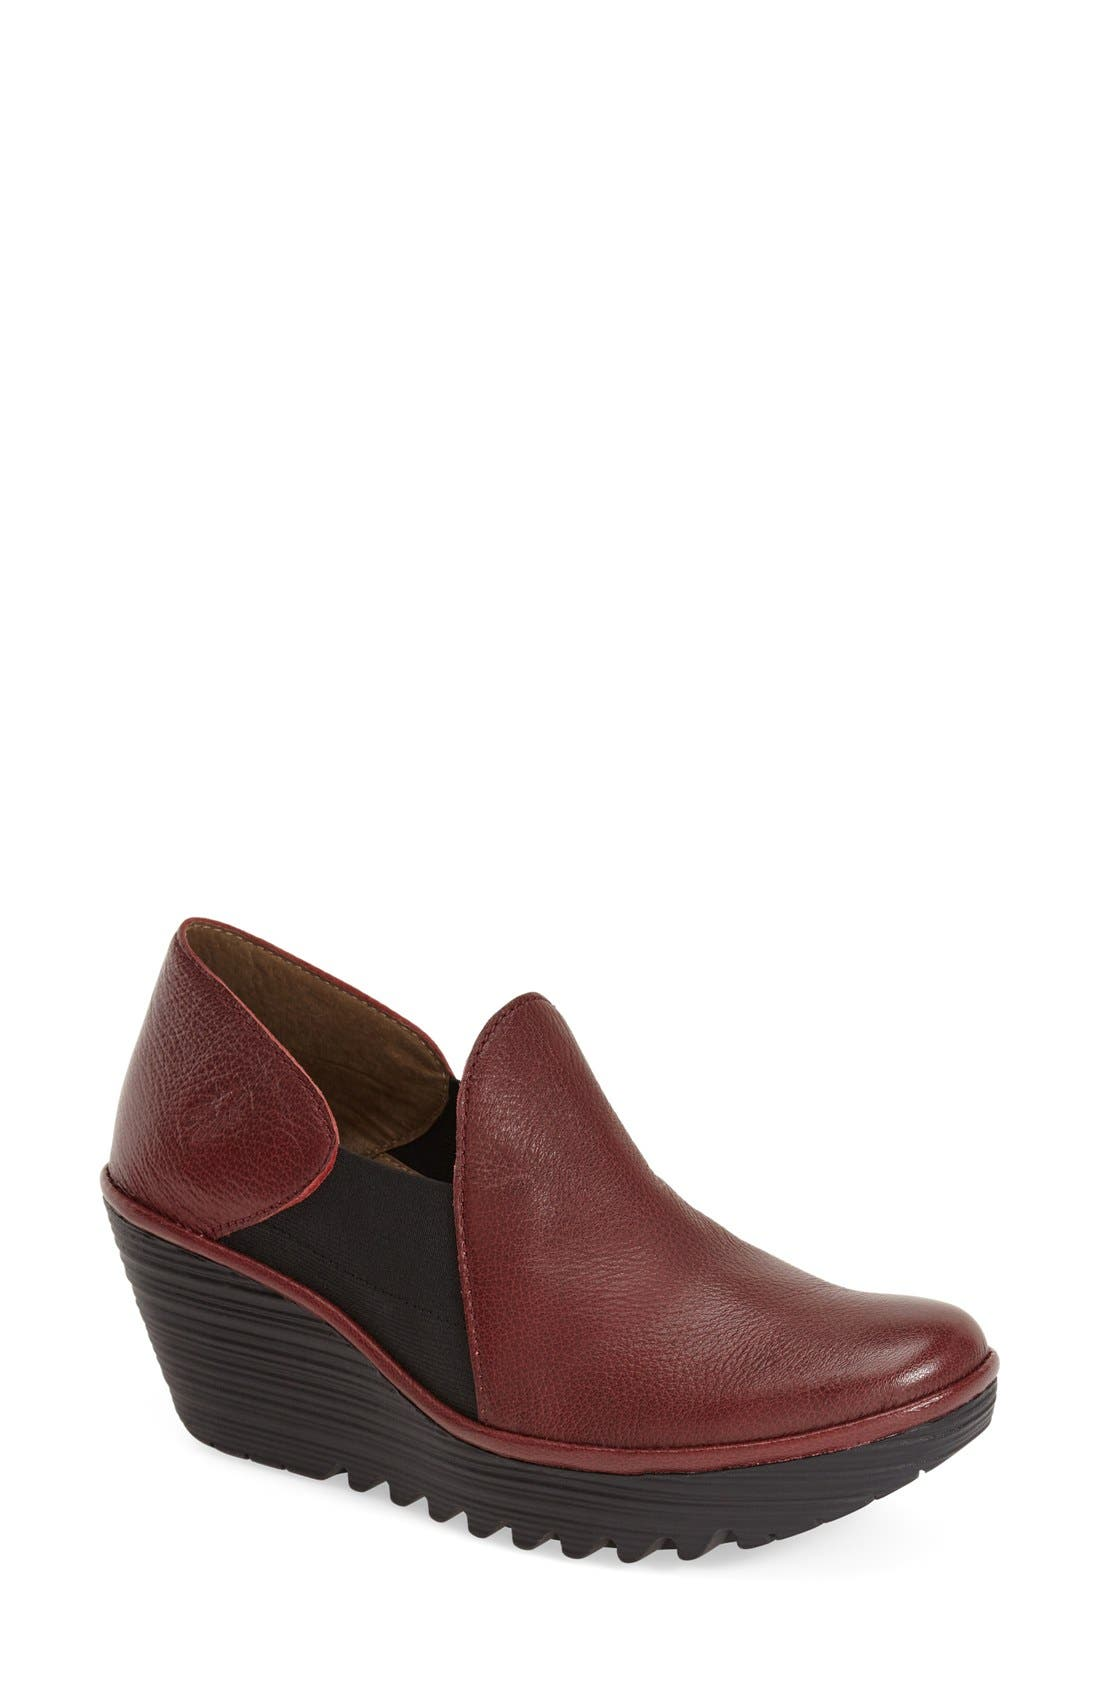 Alternate Image 1 Selected - Fly London 'Yua' Platform Wedge Pump (Women)